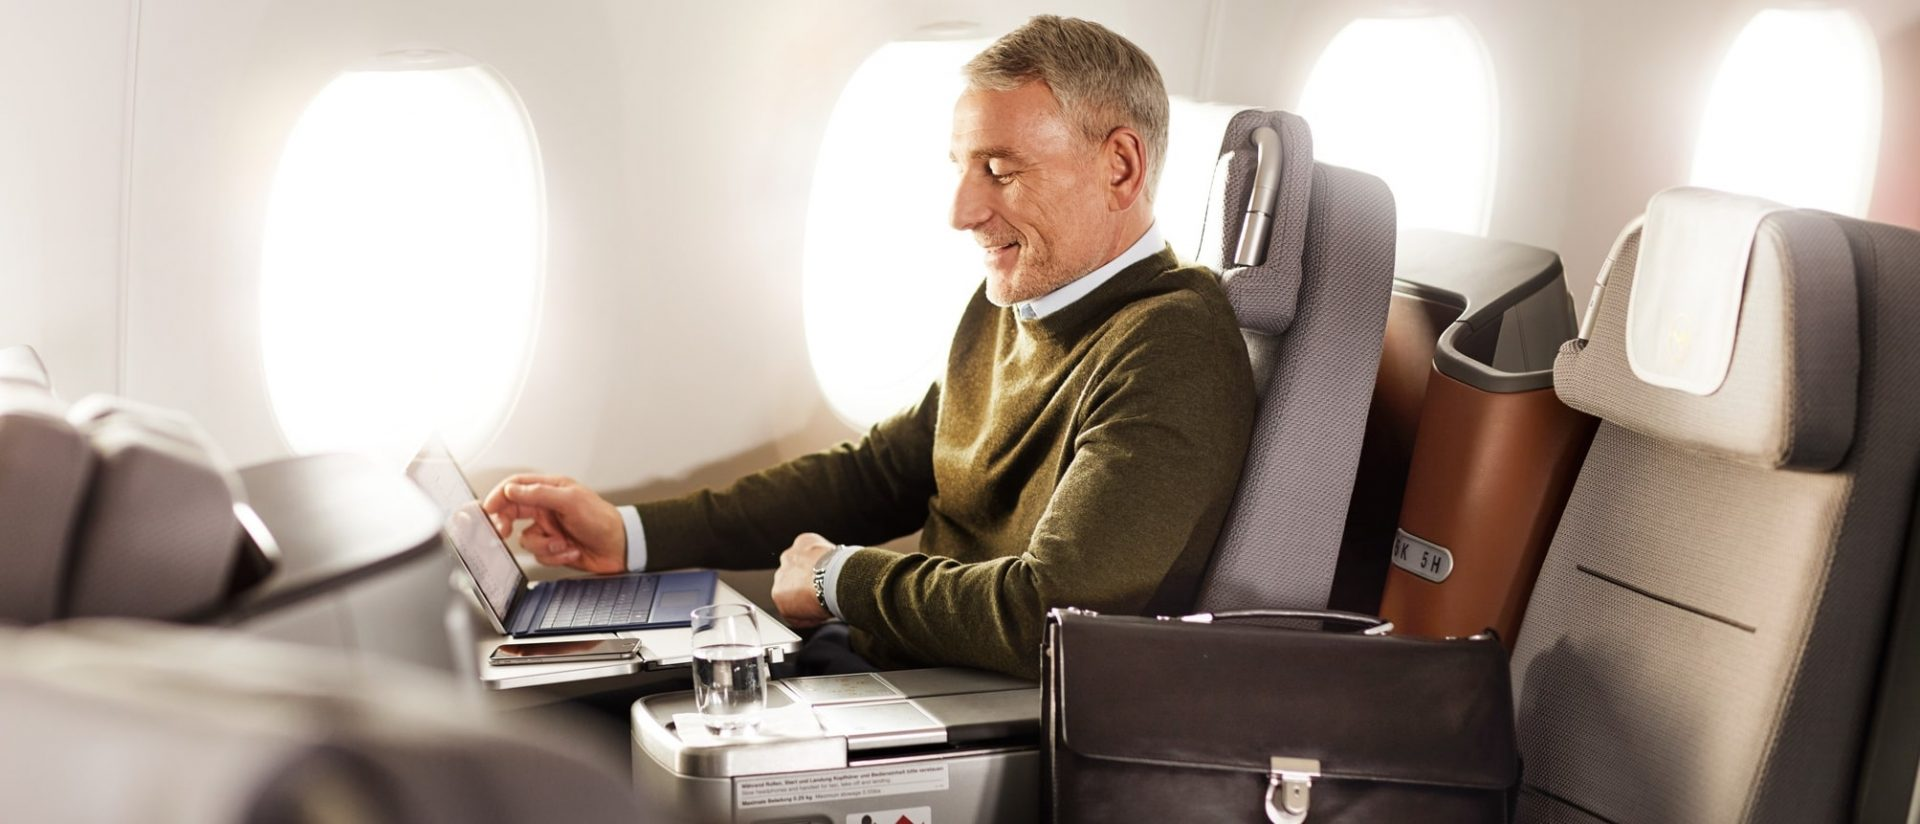 Tel Aviv to South America in Business Class with Lufthansa starting from €1,617/$1,755